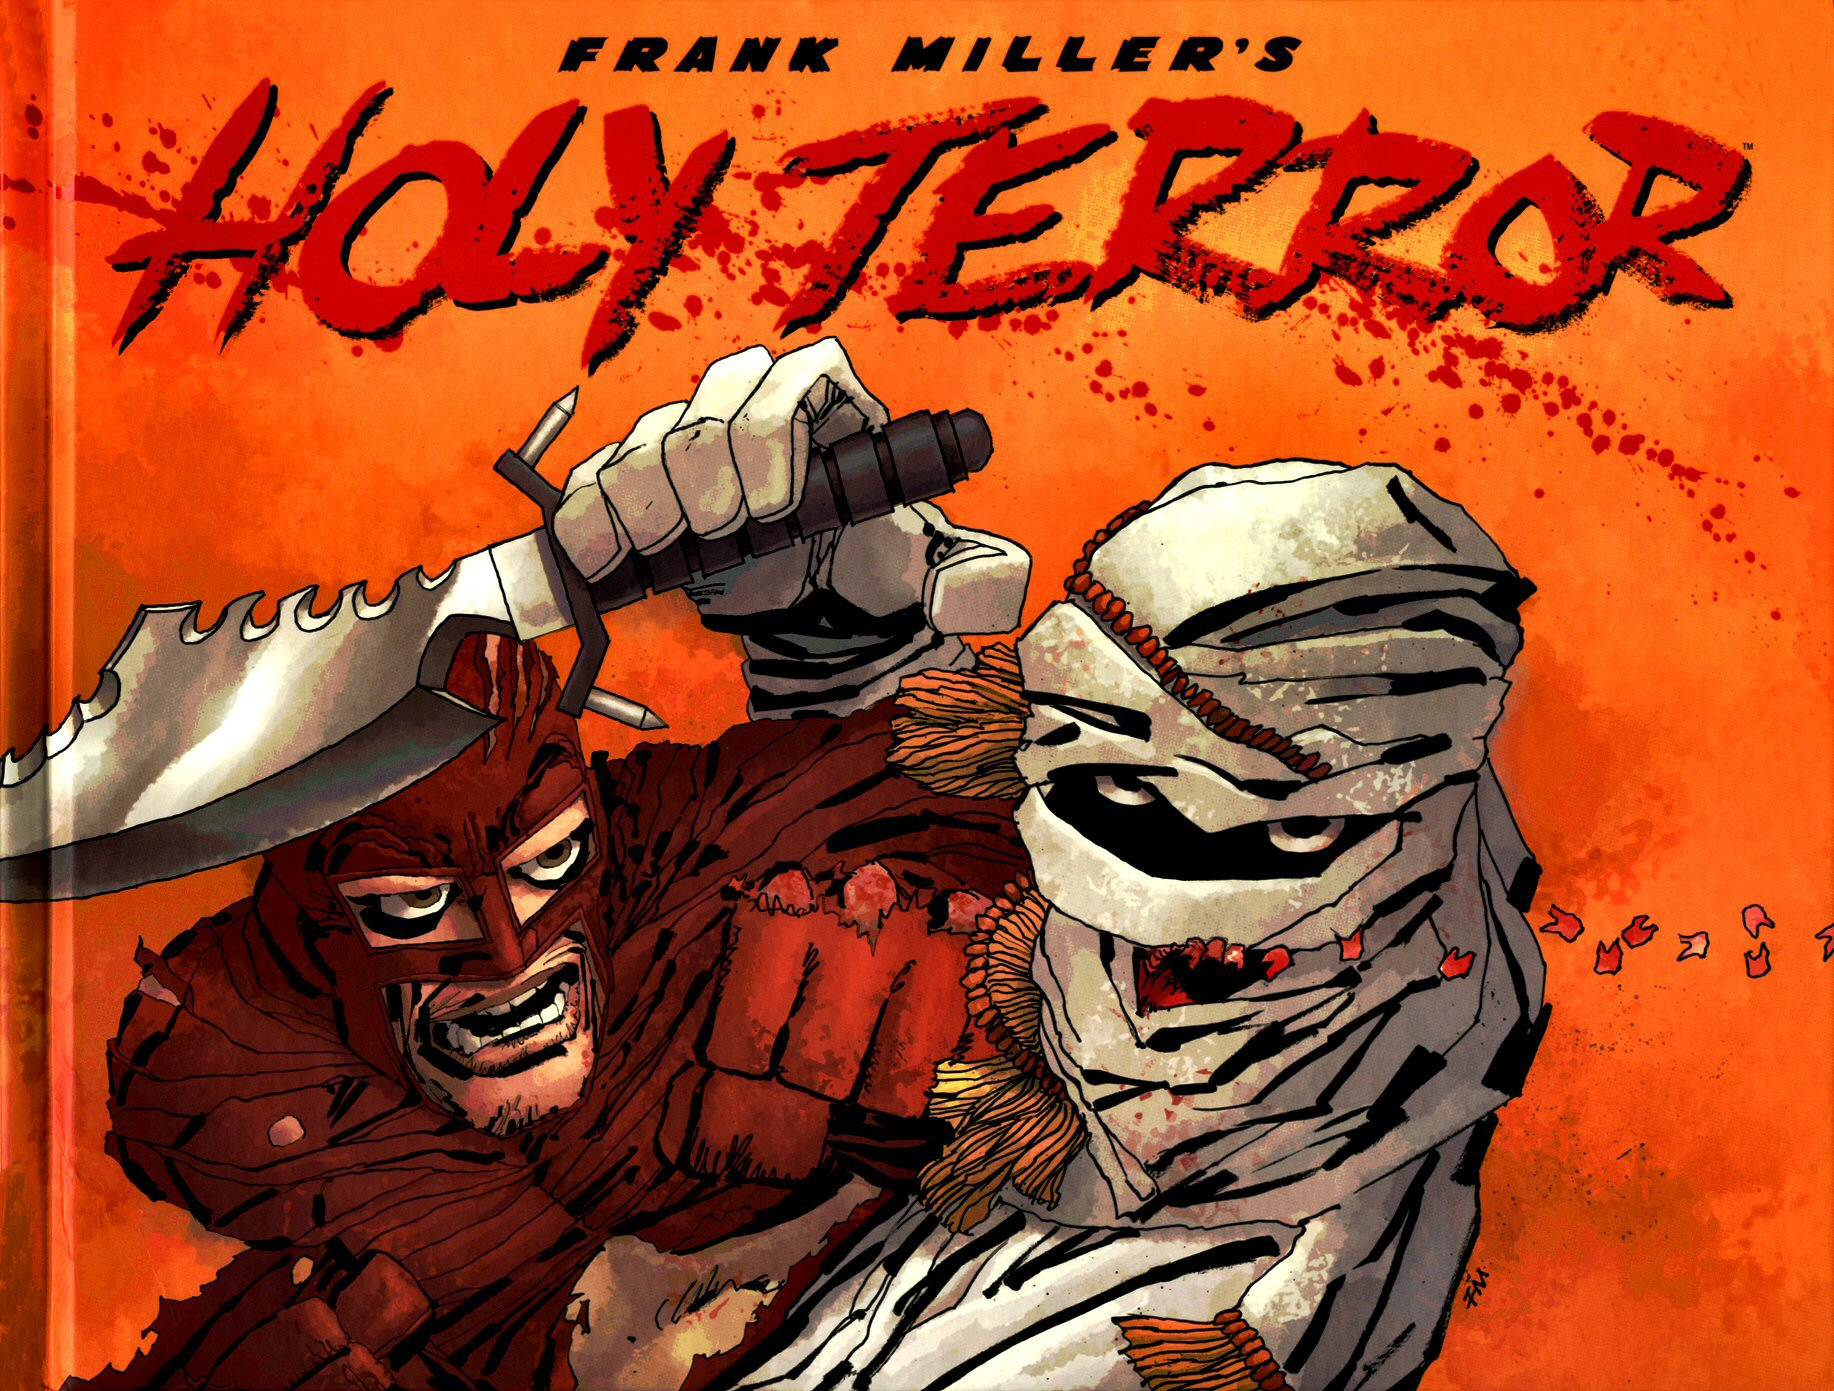 Read online Frank Miller's Holy Terror comic -  Issue # TPB - 1